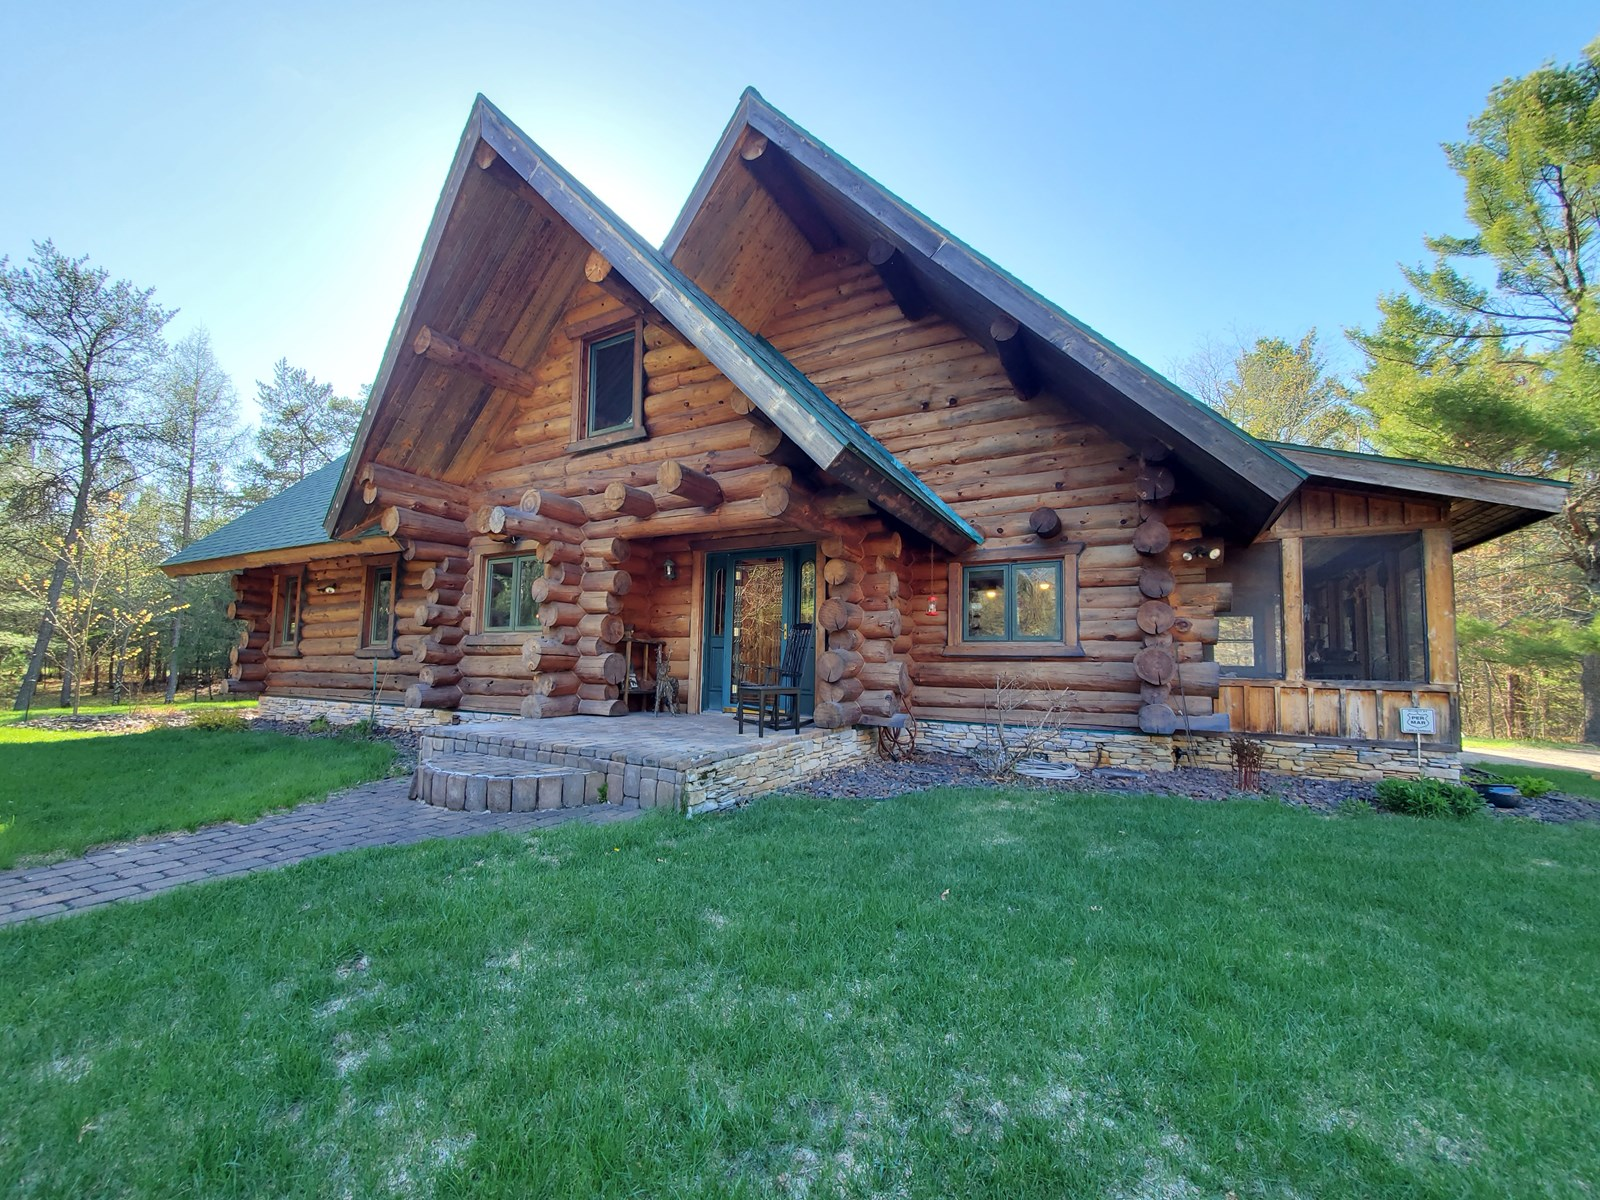 Secluded log cabin in the woods discovered!